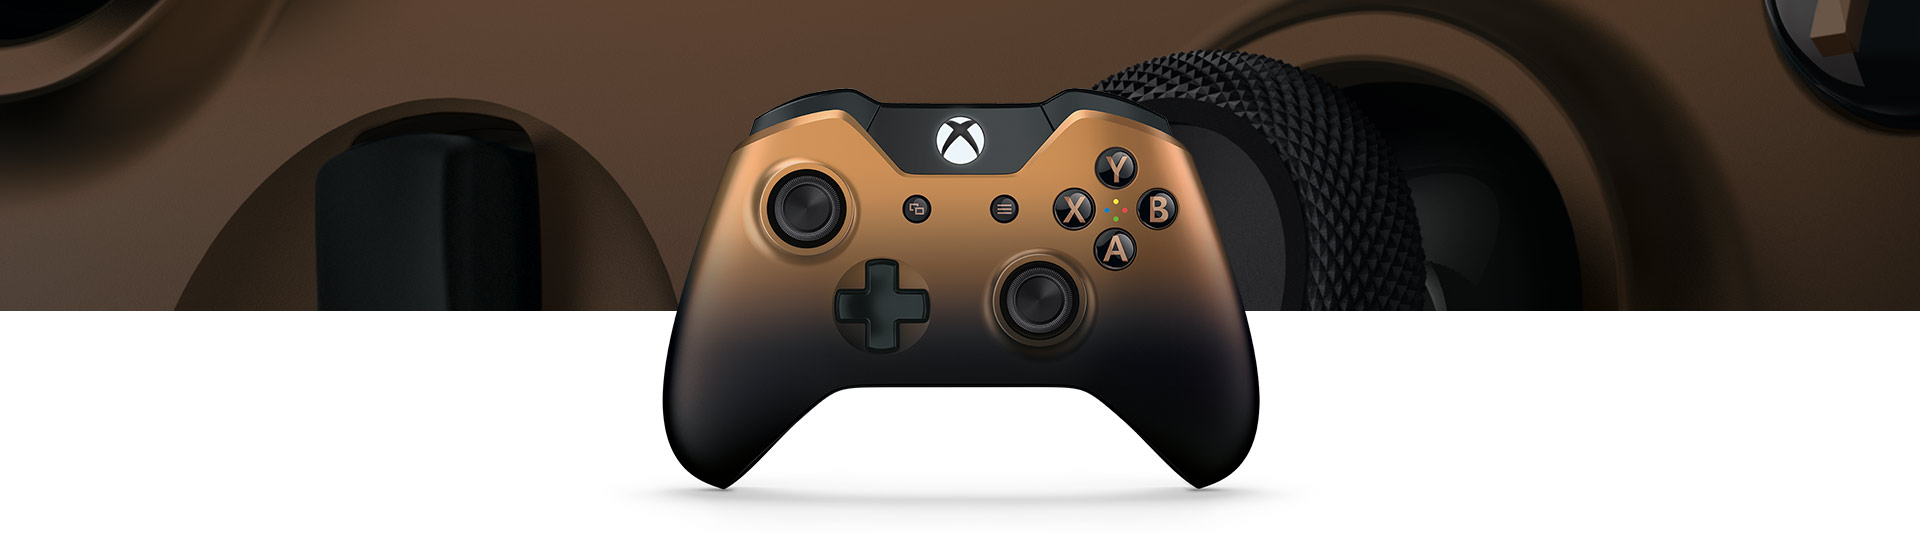 Manette Xbox One Wireless Controller Copper Shadow